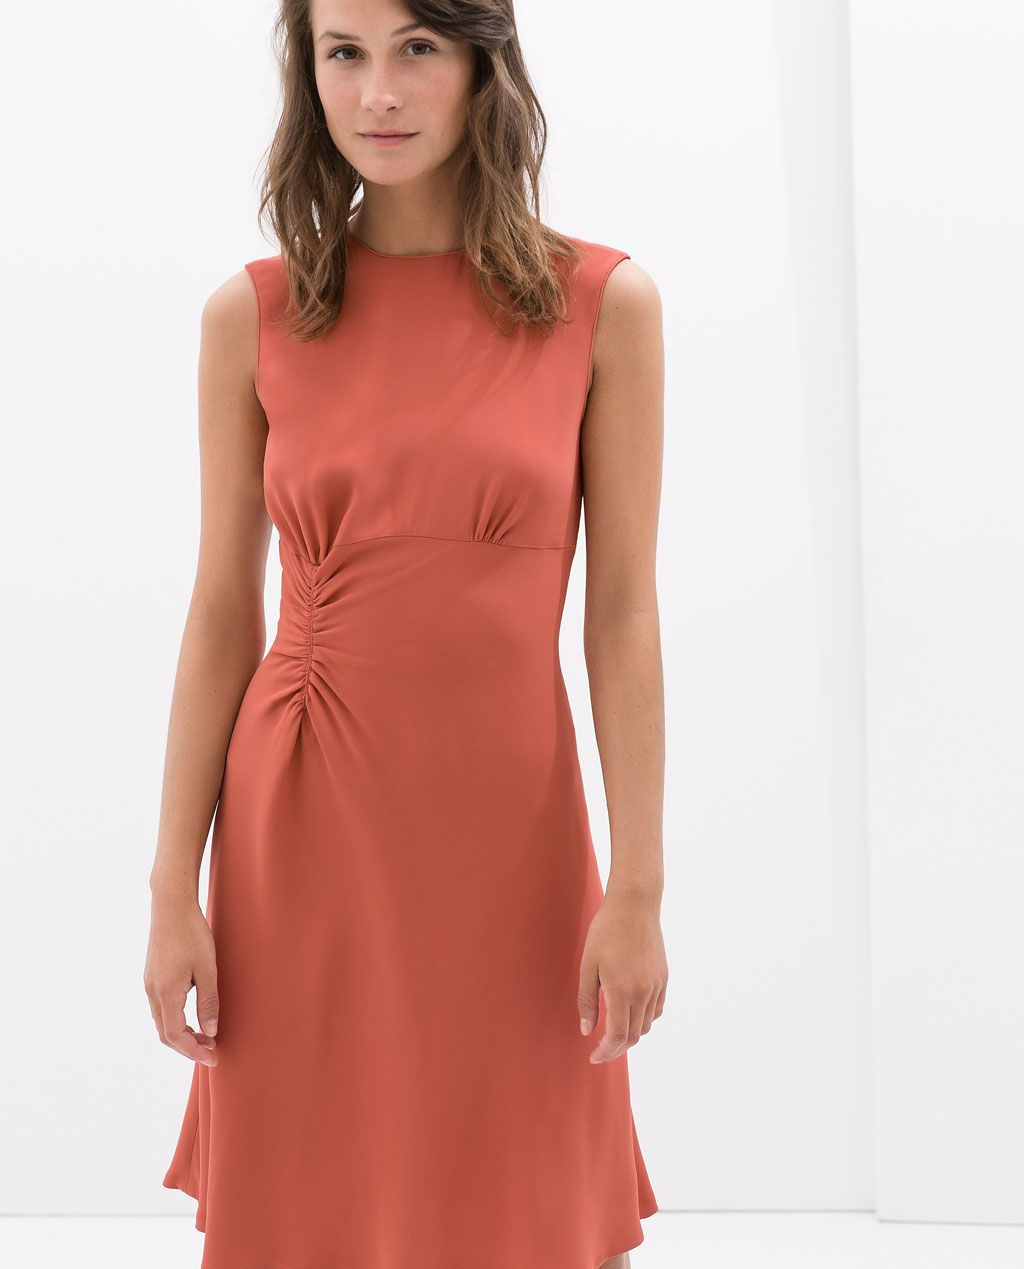 ZARA - WOMAN - DRESS WITH SIDE GATHERING $11.11 #officetrends